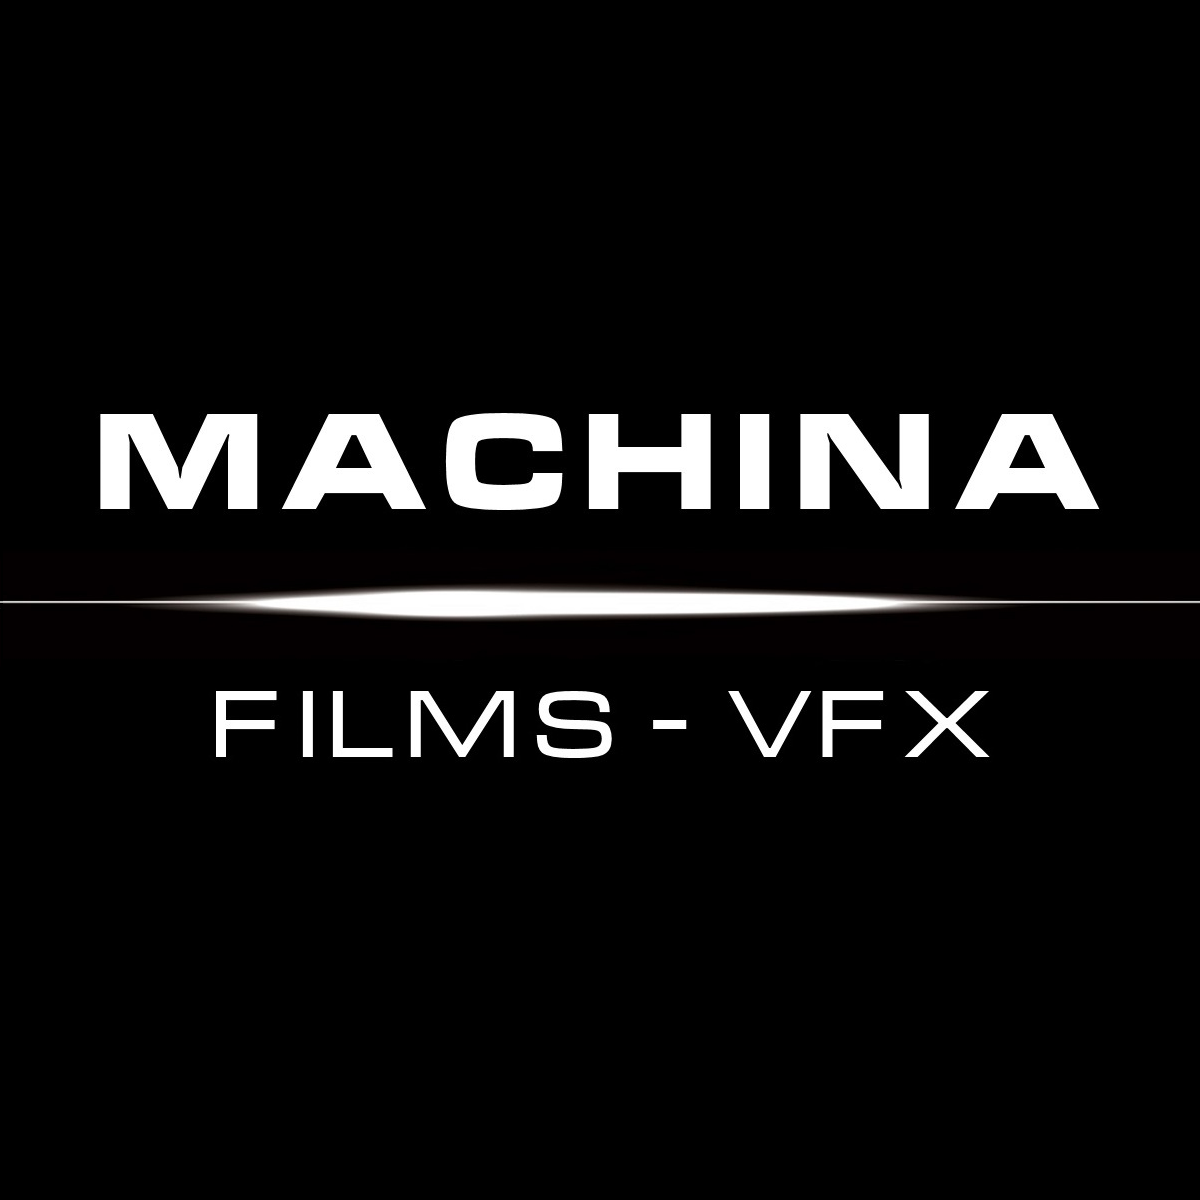 Machina Films